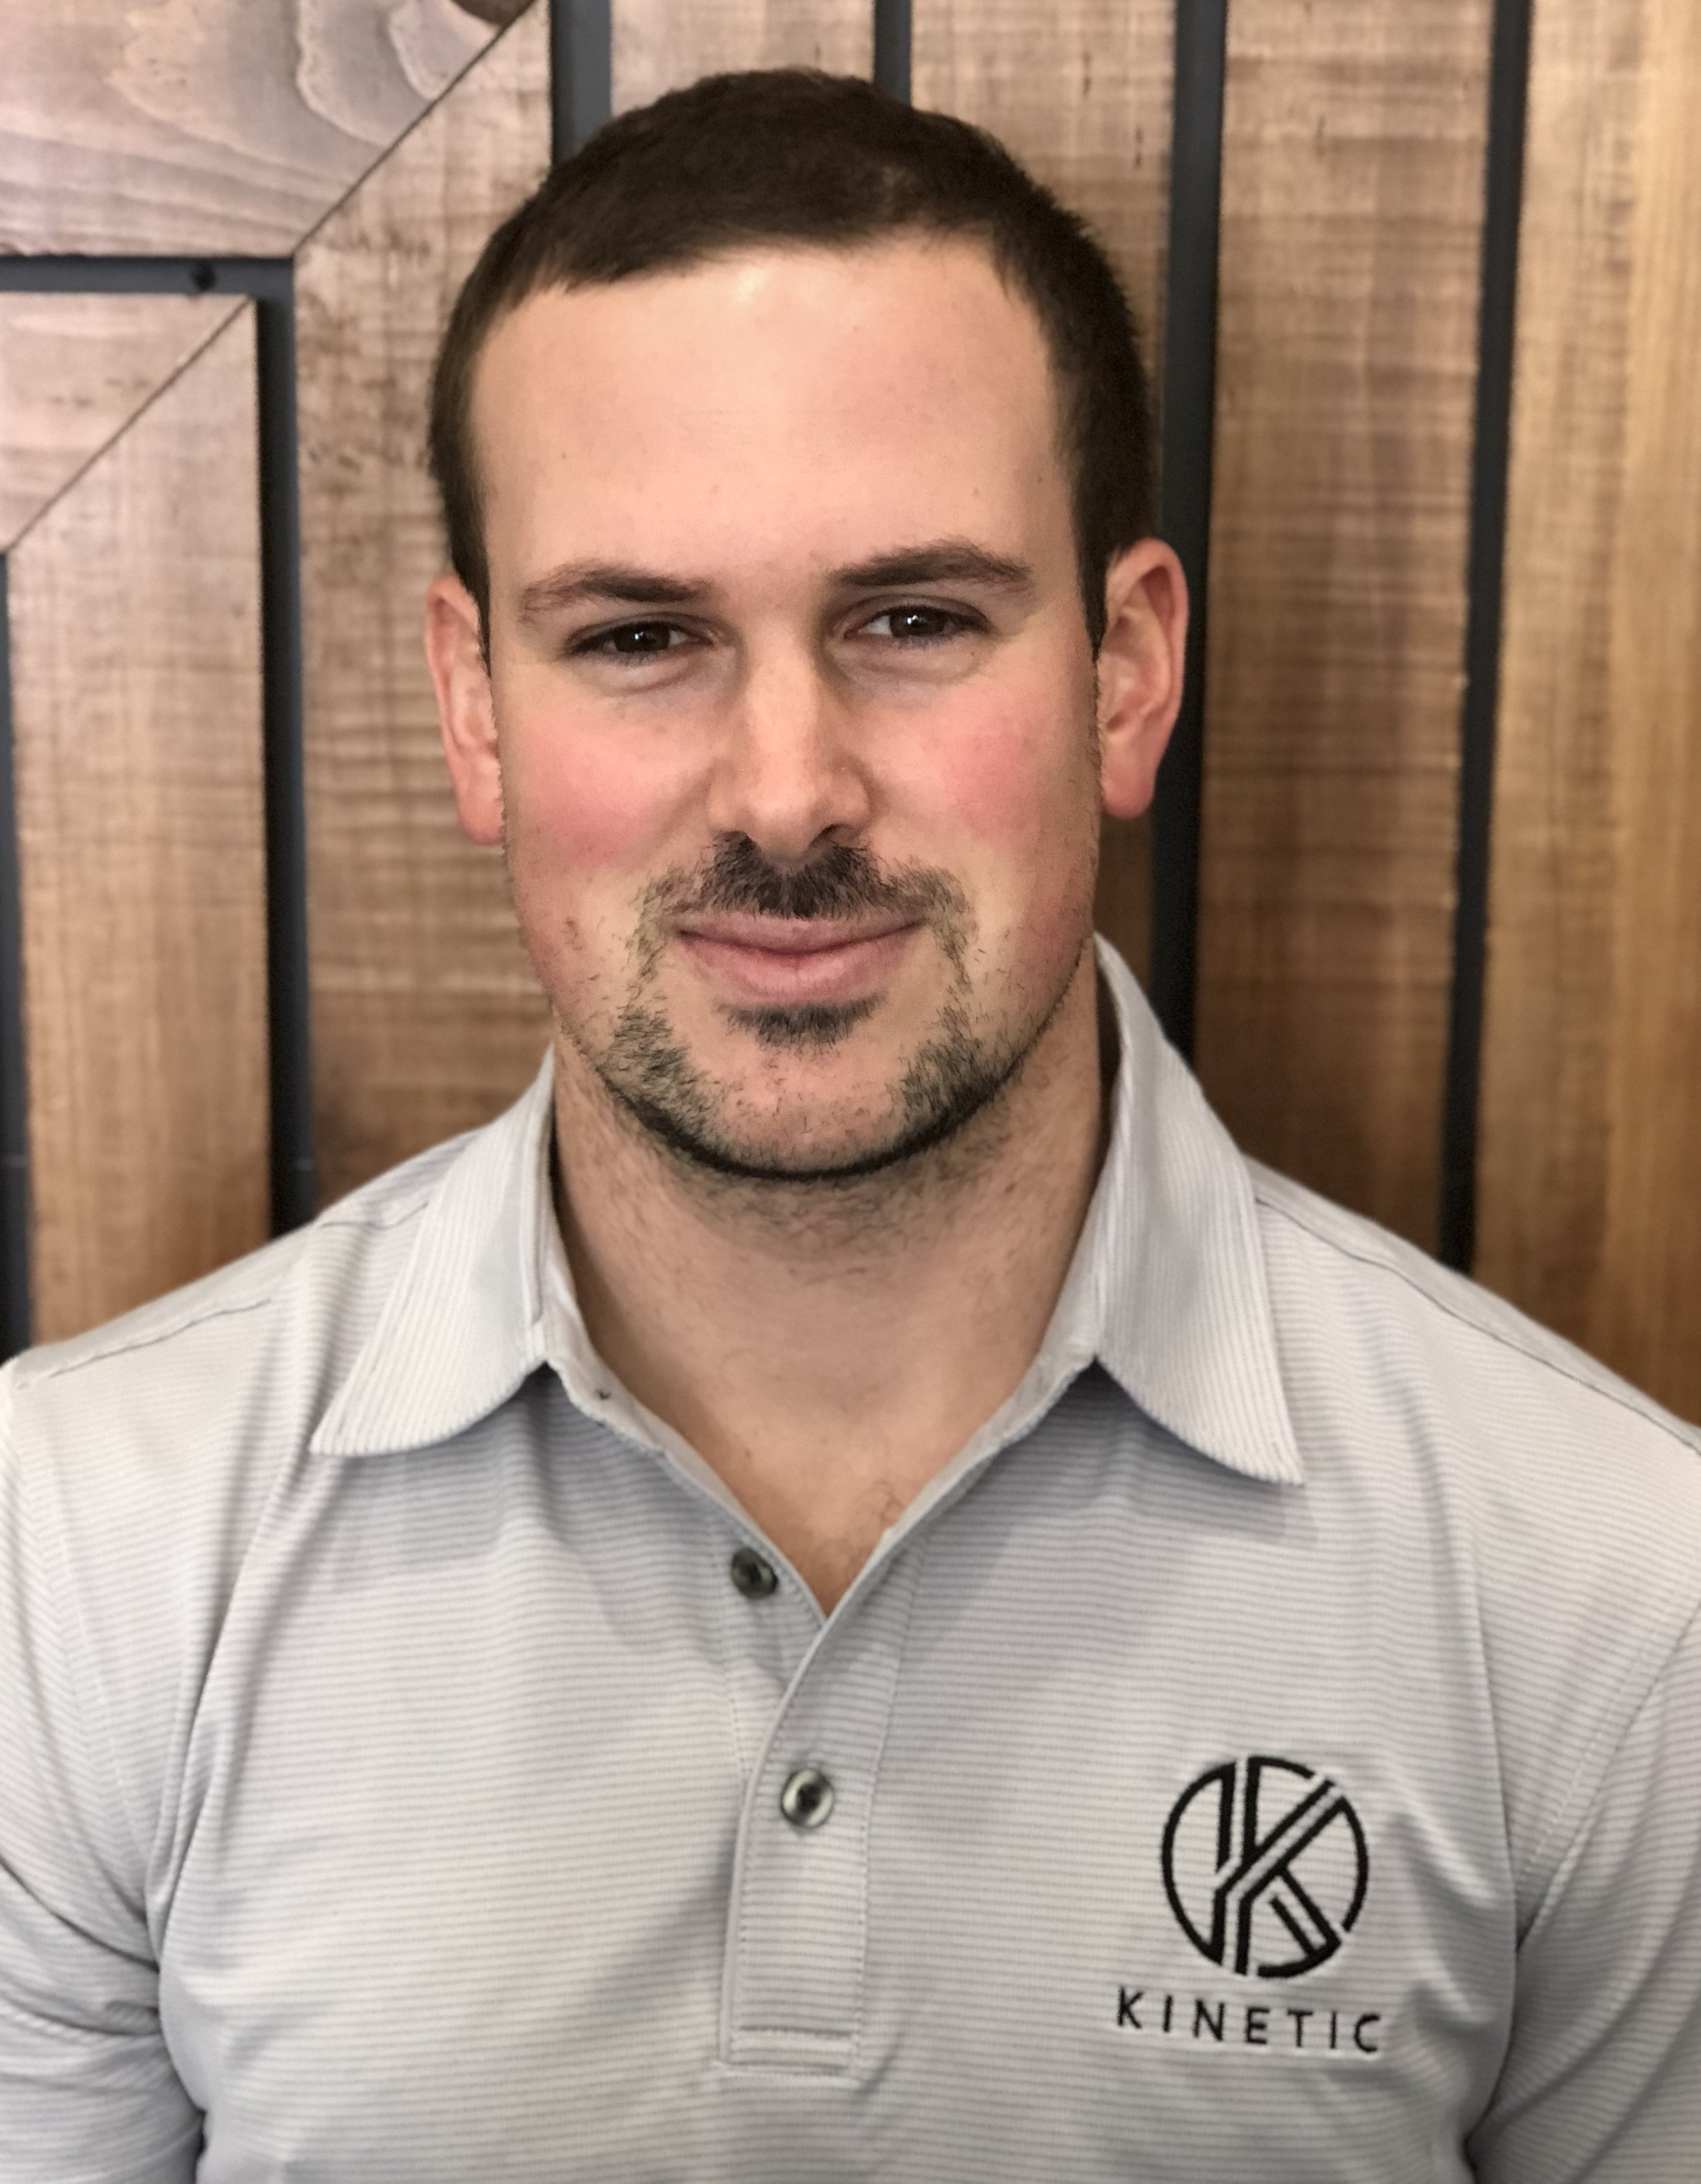 MICHAEL COPPO - PHYSIOTHERAPIST AND DIRECTOR